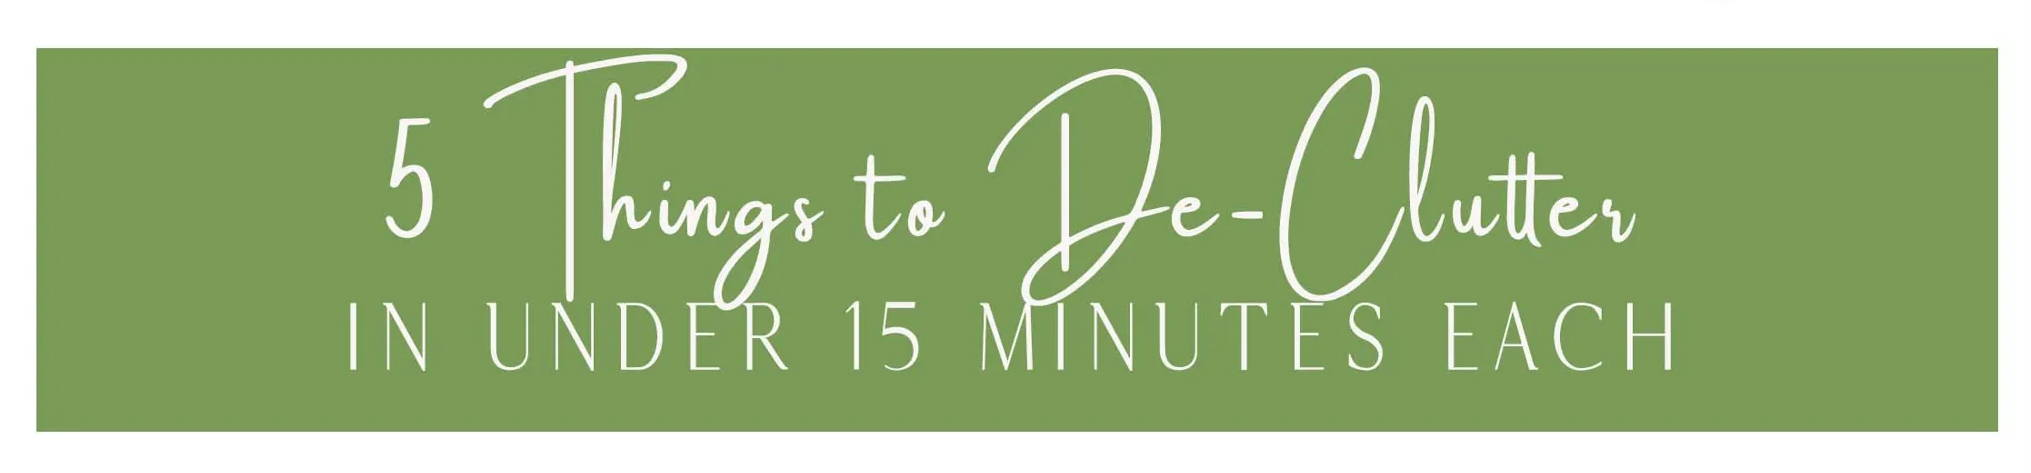 5 things to declutter in under 15 minutes